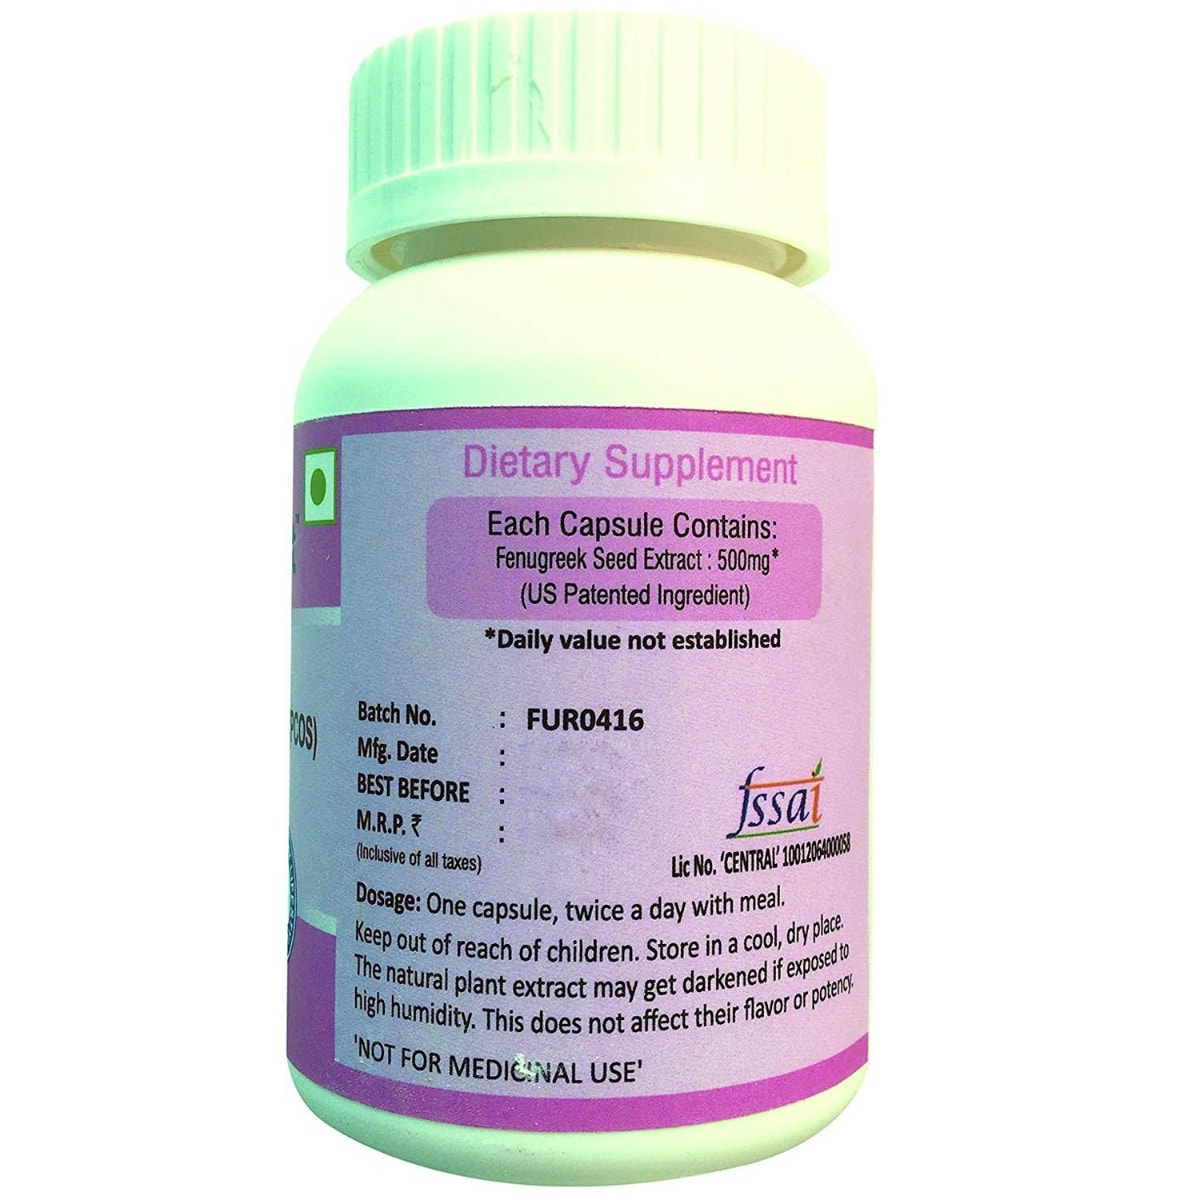 Furocyst Pcos Support, 60 Capsules, Pack of 1